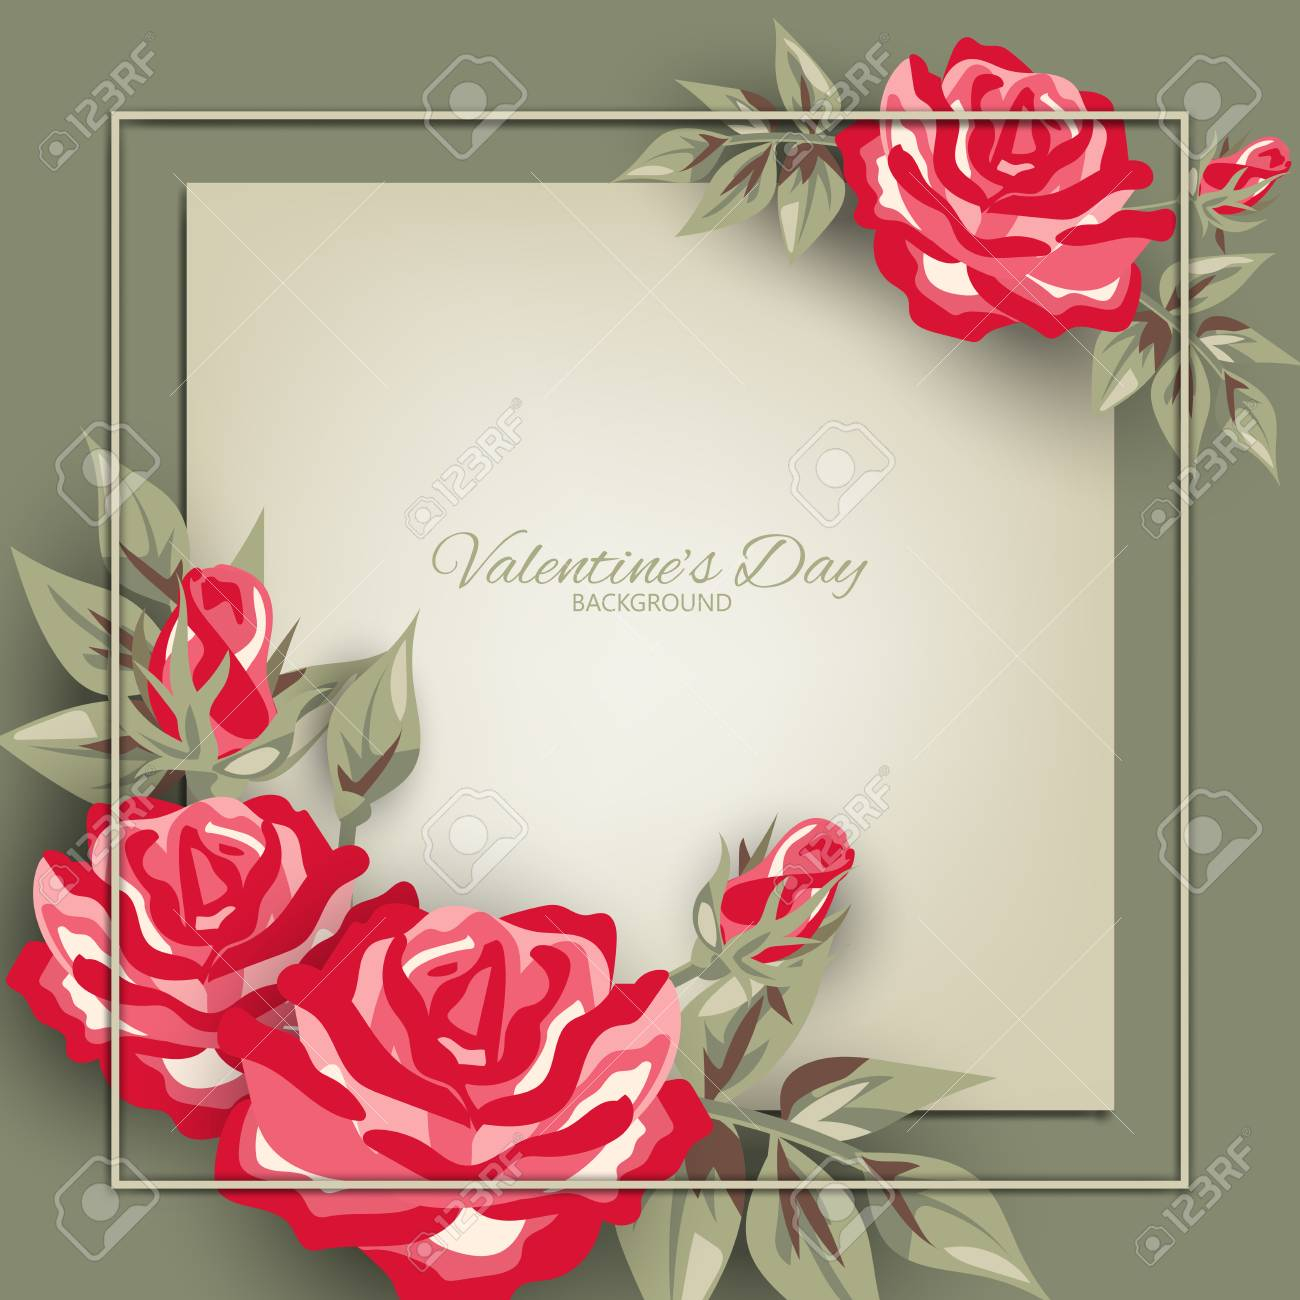 photo stock vector valentines day background with pink rose frame concept of love and valentine day